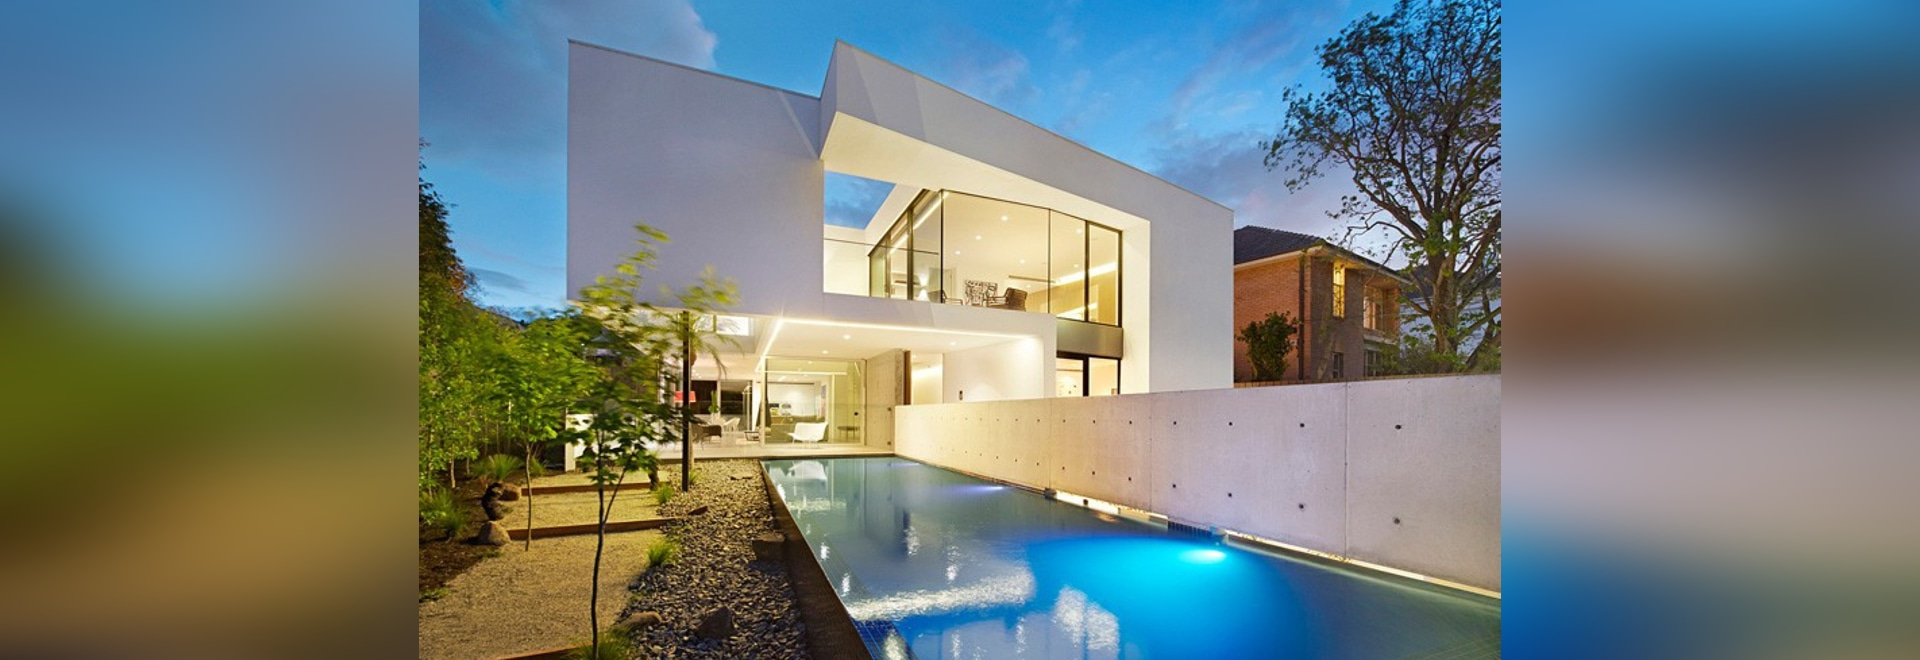 SVMSTUDIO Design A Home Filled With Light And Space